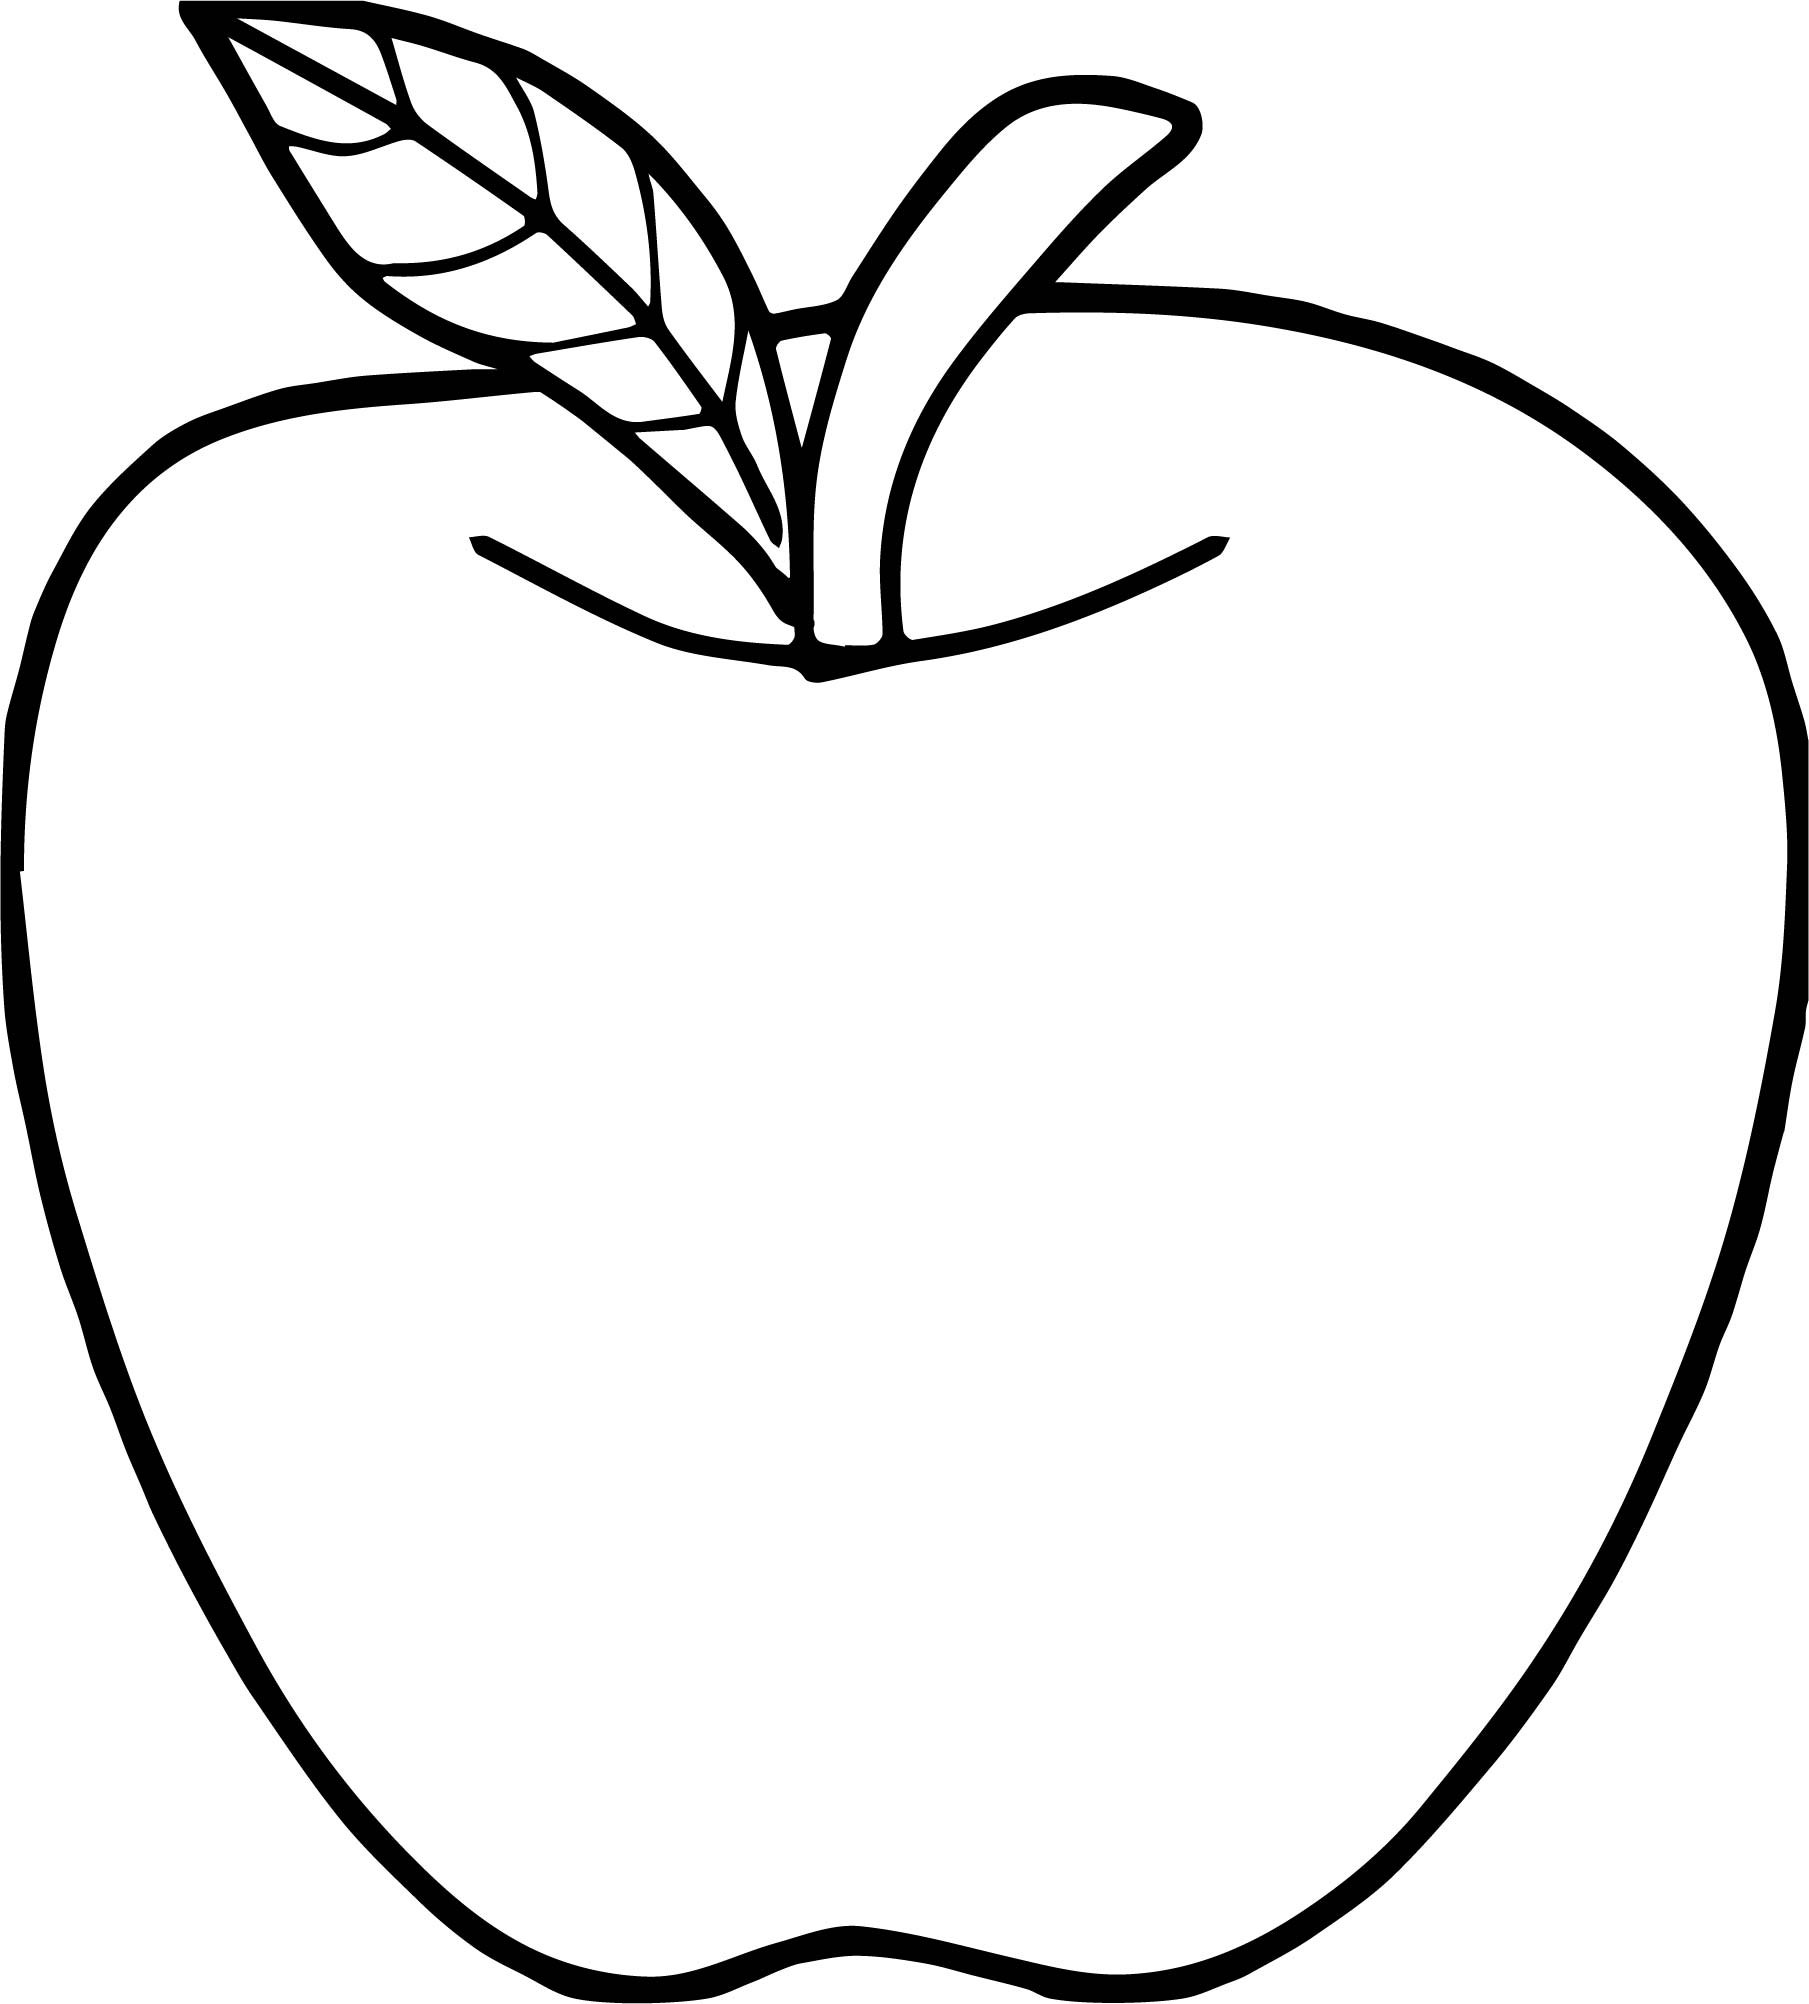 coloring apple page fresh apple coloring page mitraland coloring page apple